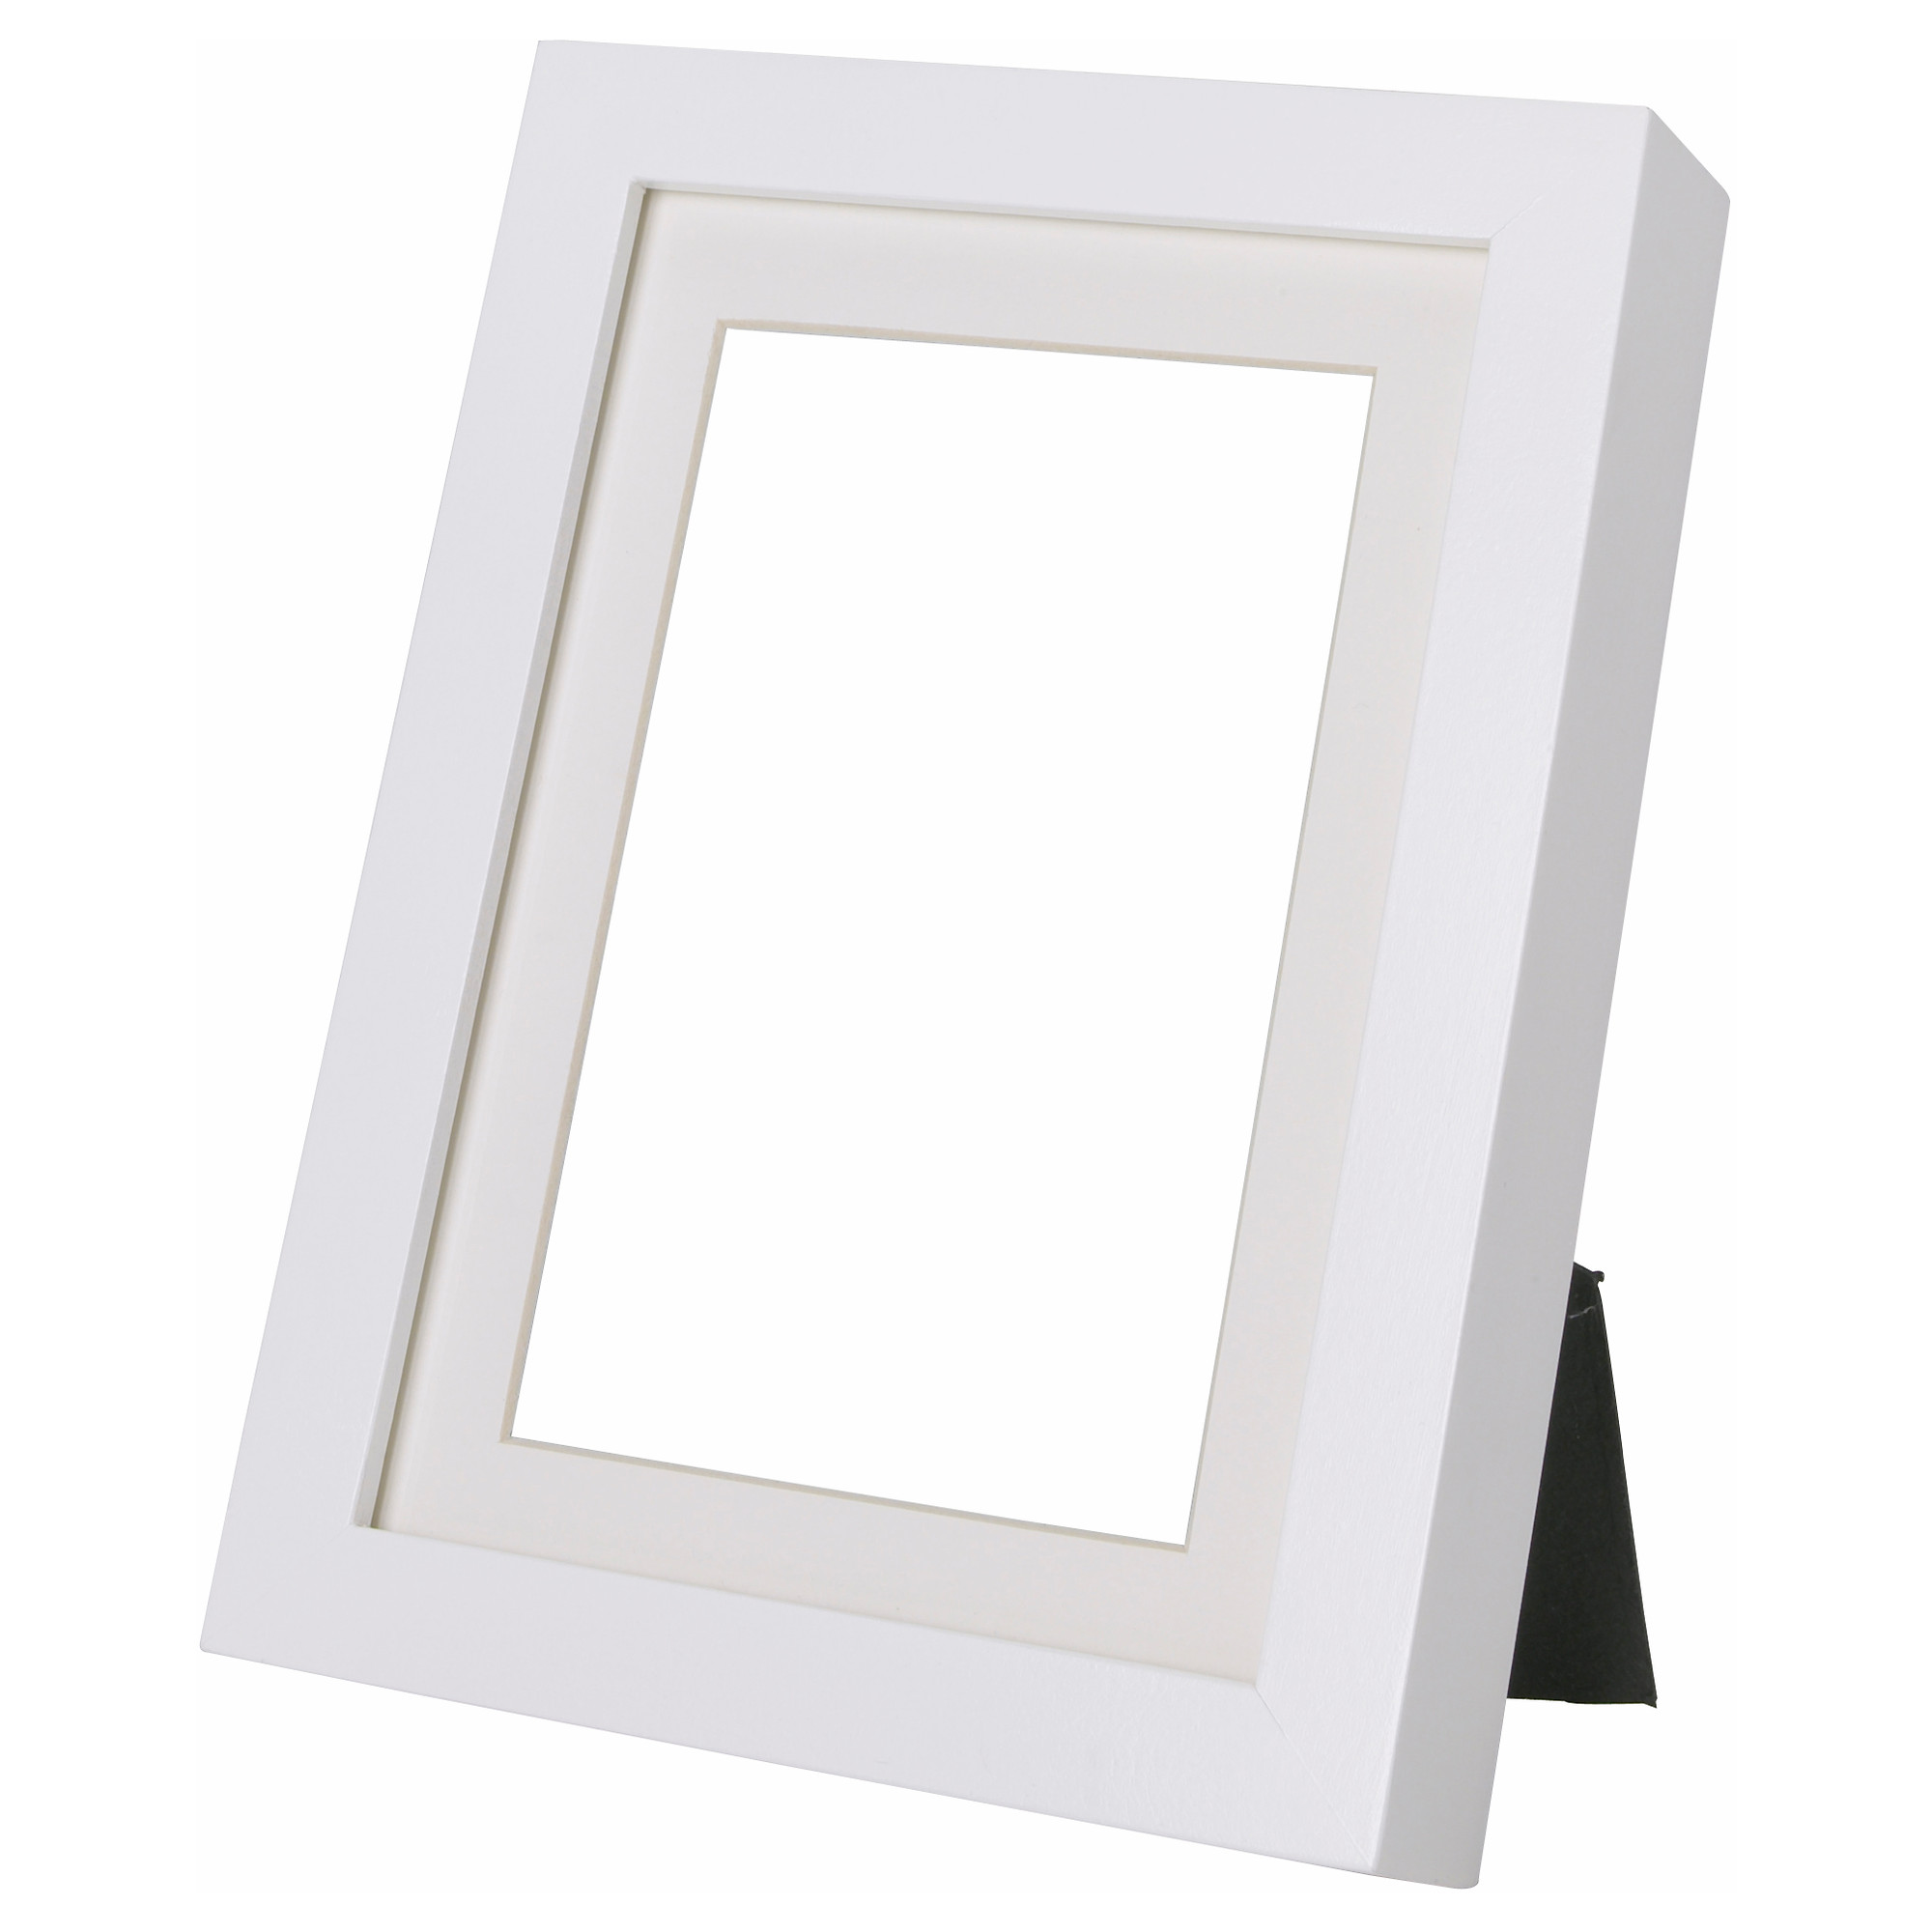 Photo Frames Archives - PRINTALTA